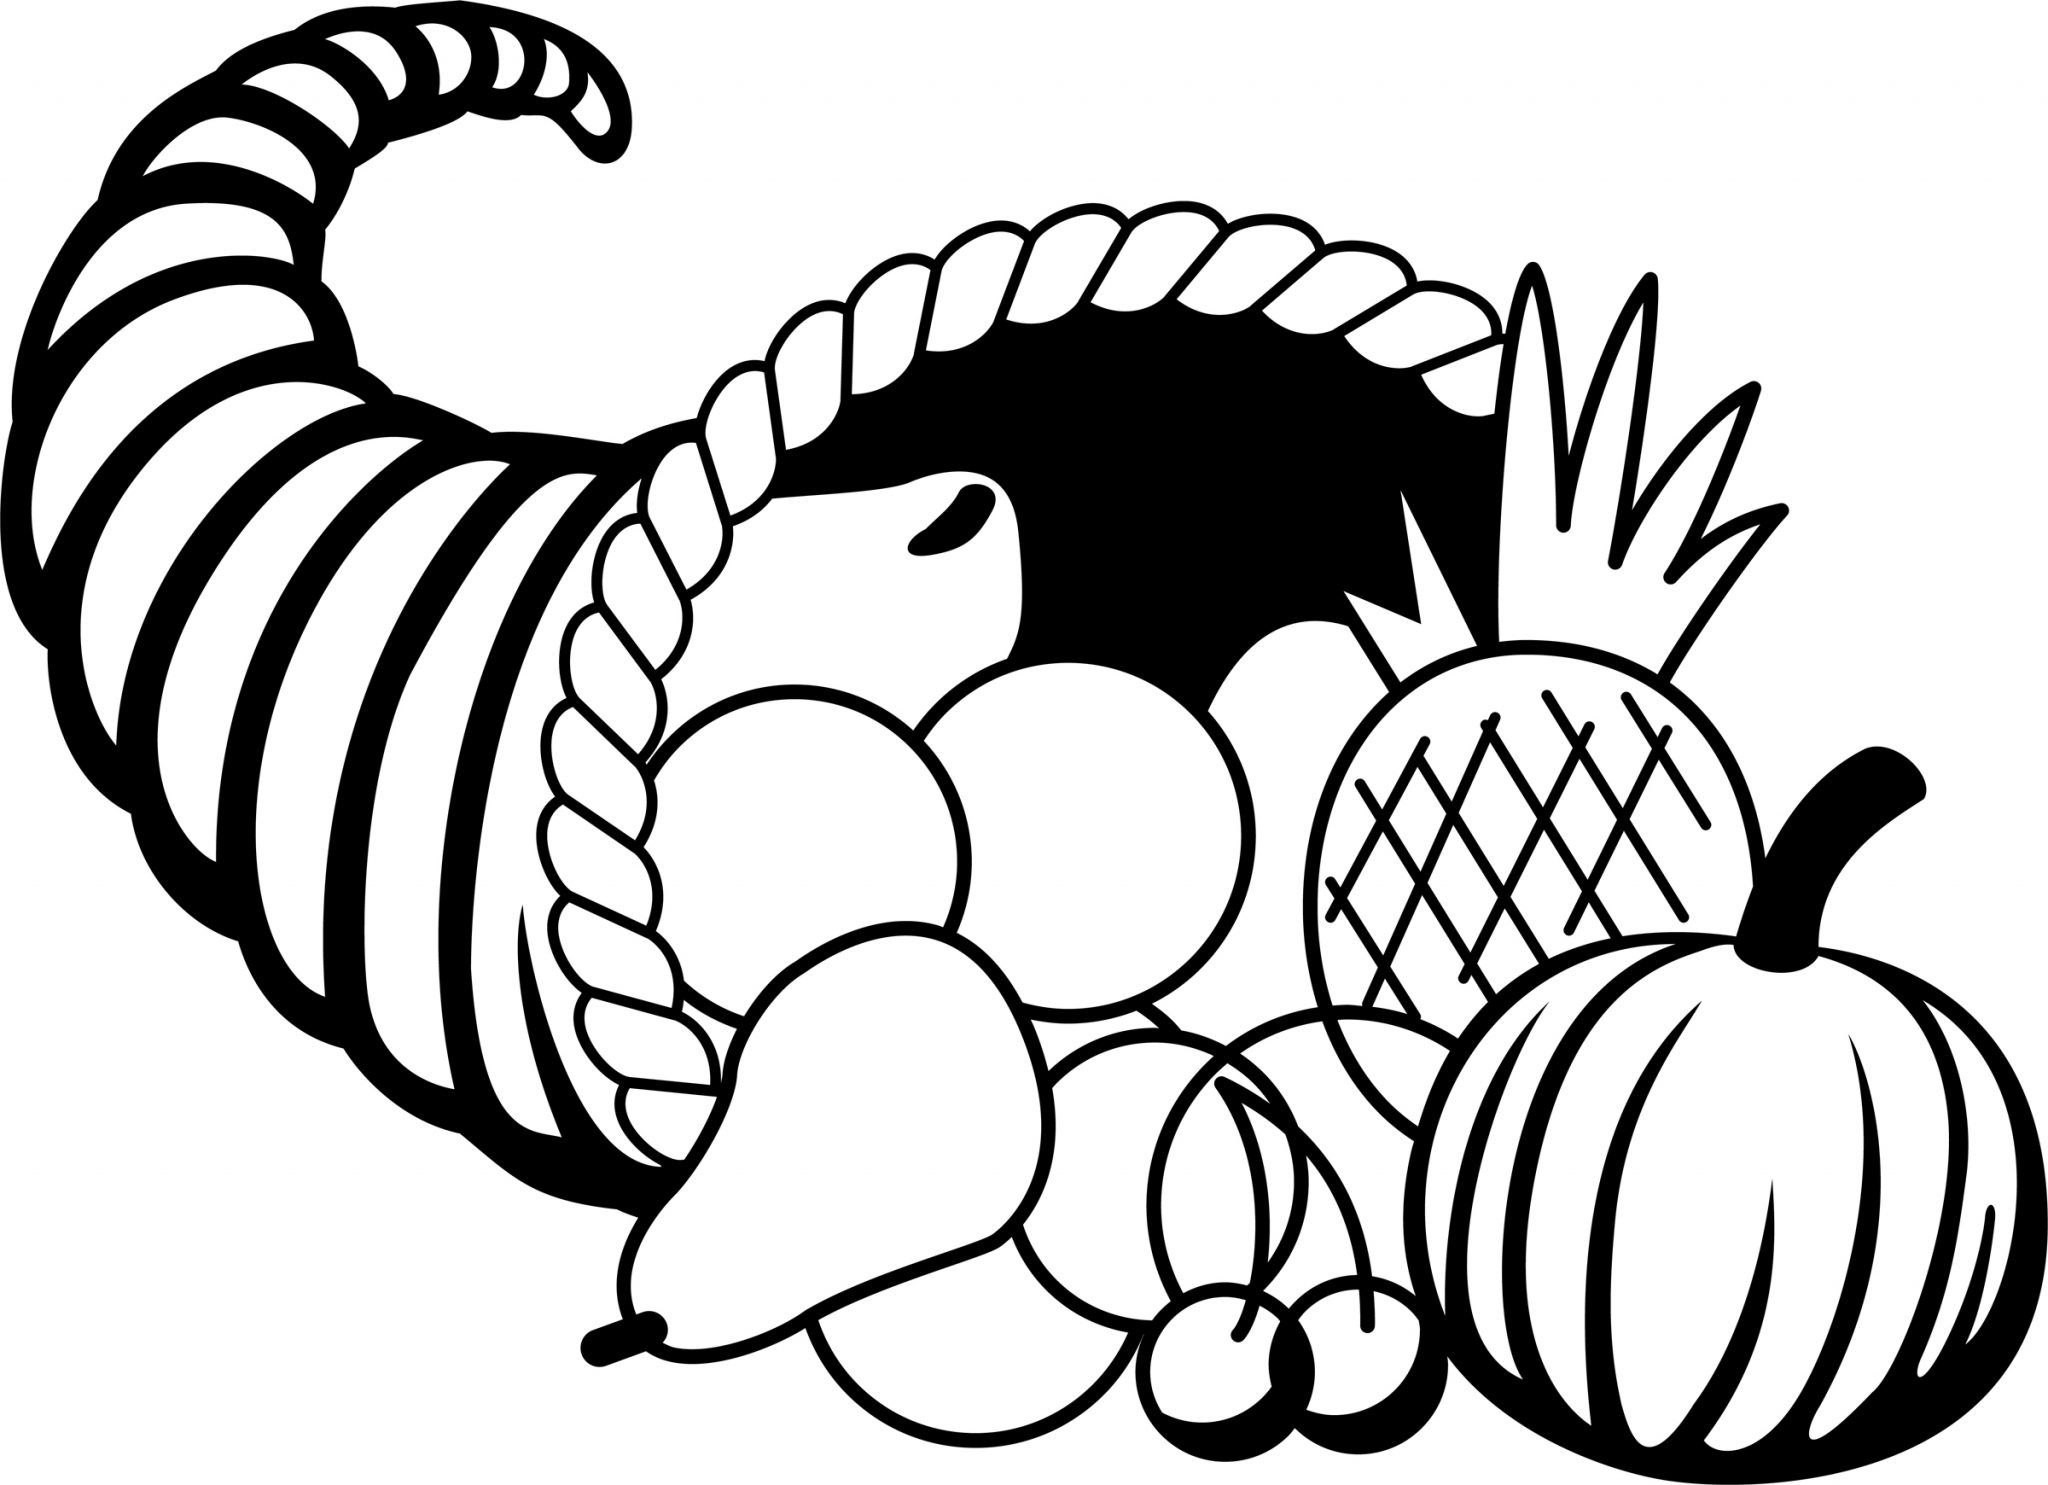 Animated Thanksgiving Black and White clipart